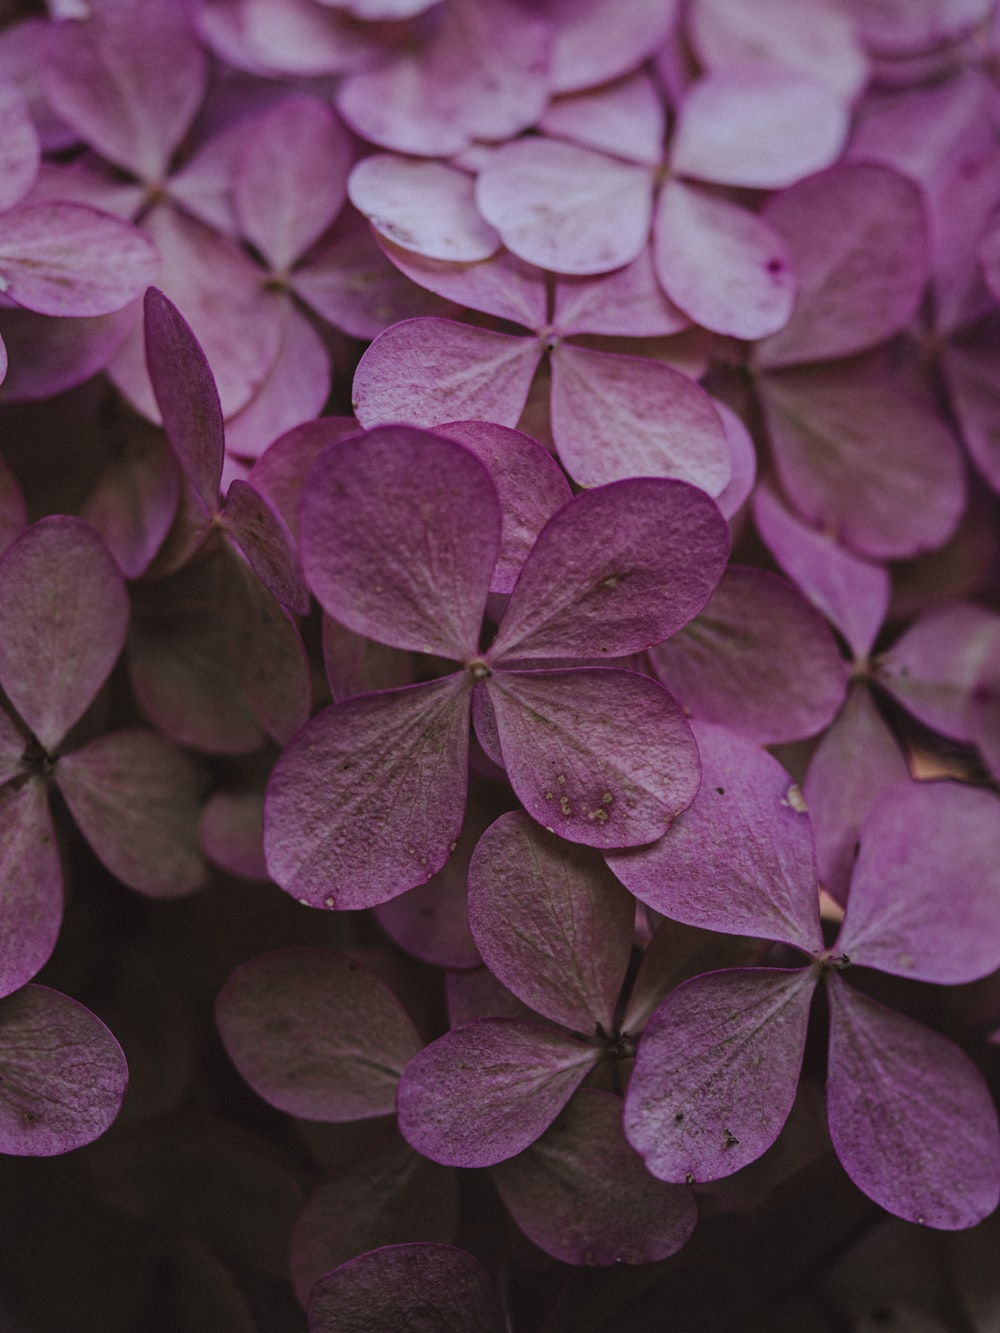 purple and white flower petals